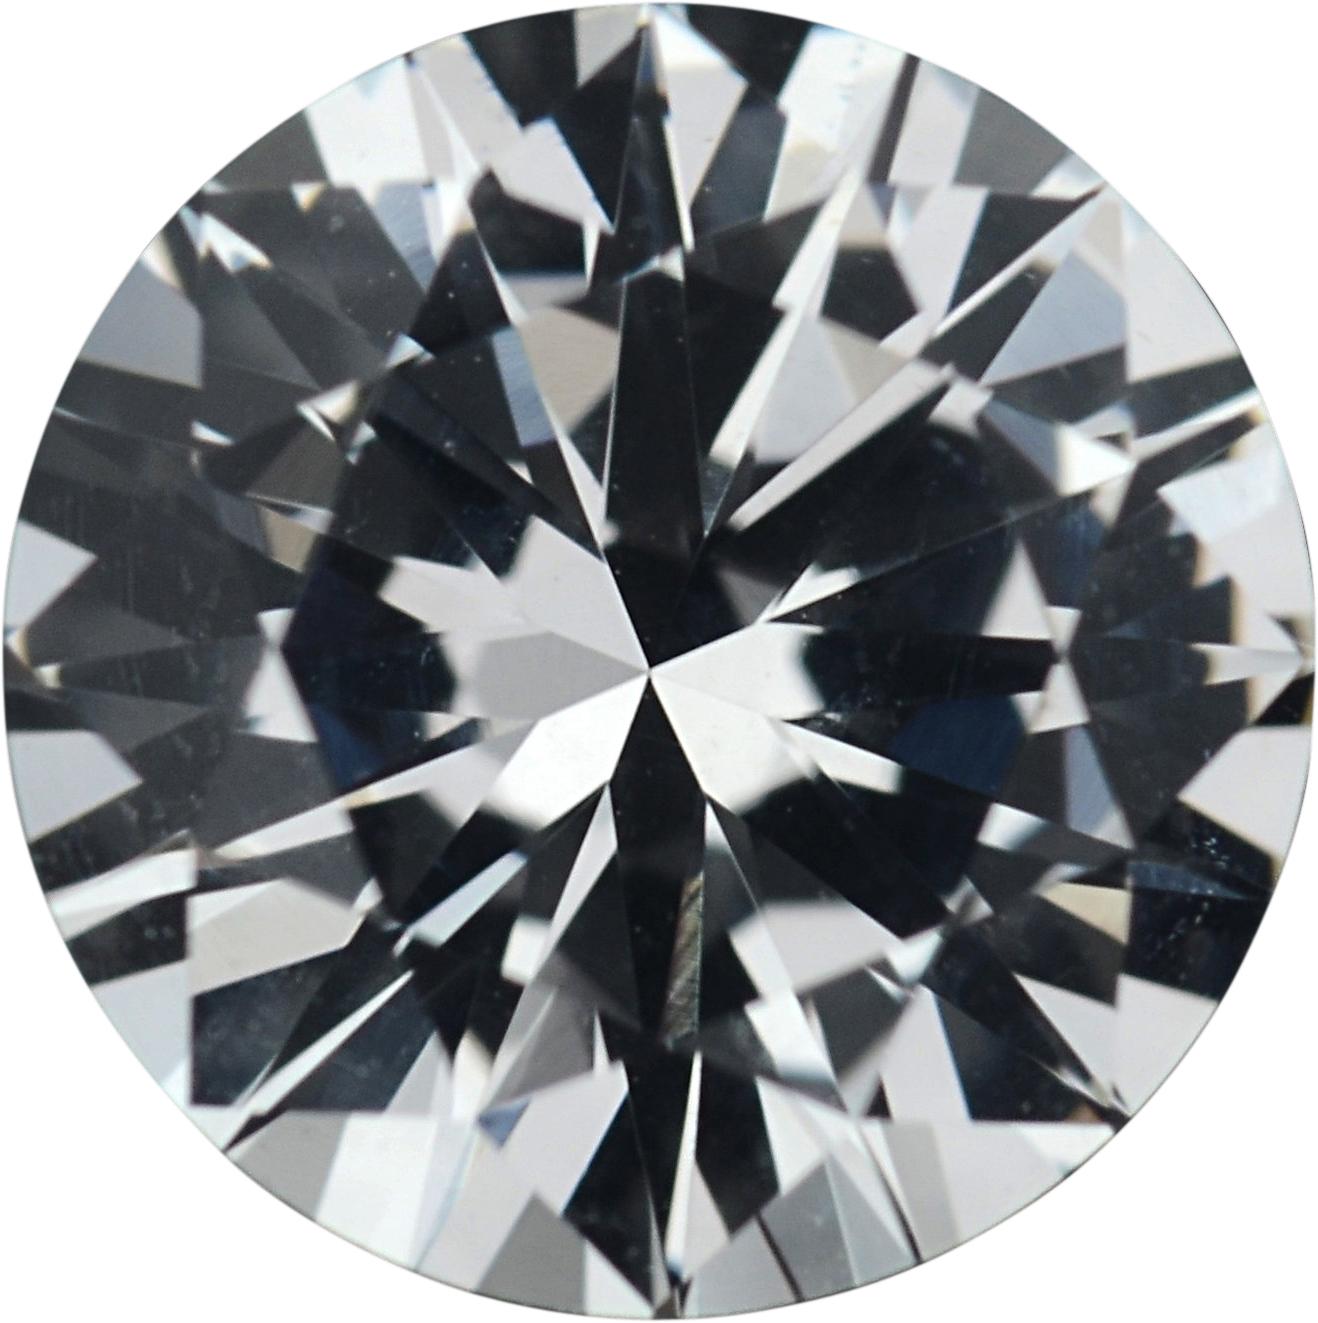 1.31 carats White Loose Sapphire Gemstone in Round Cut, 6.75 mm